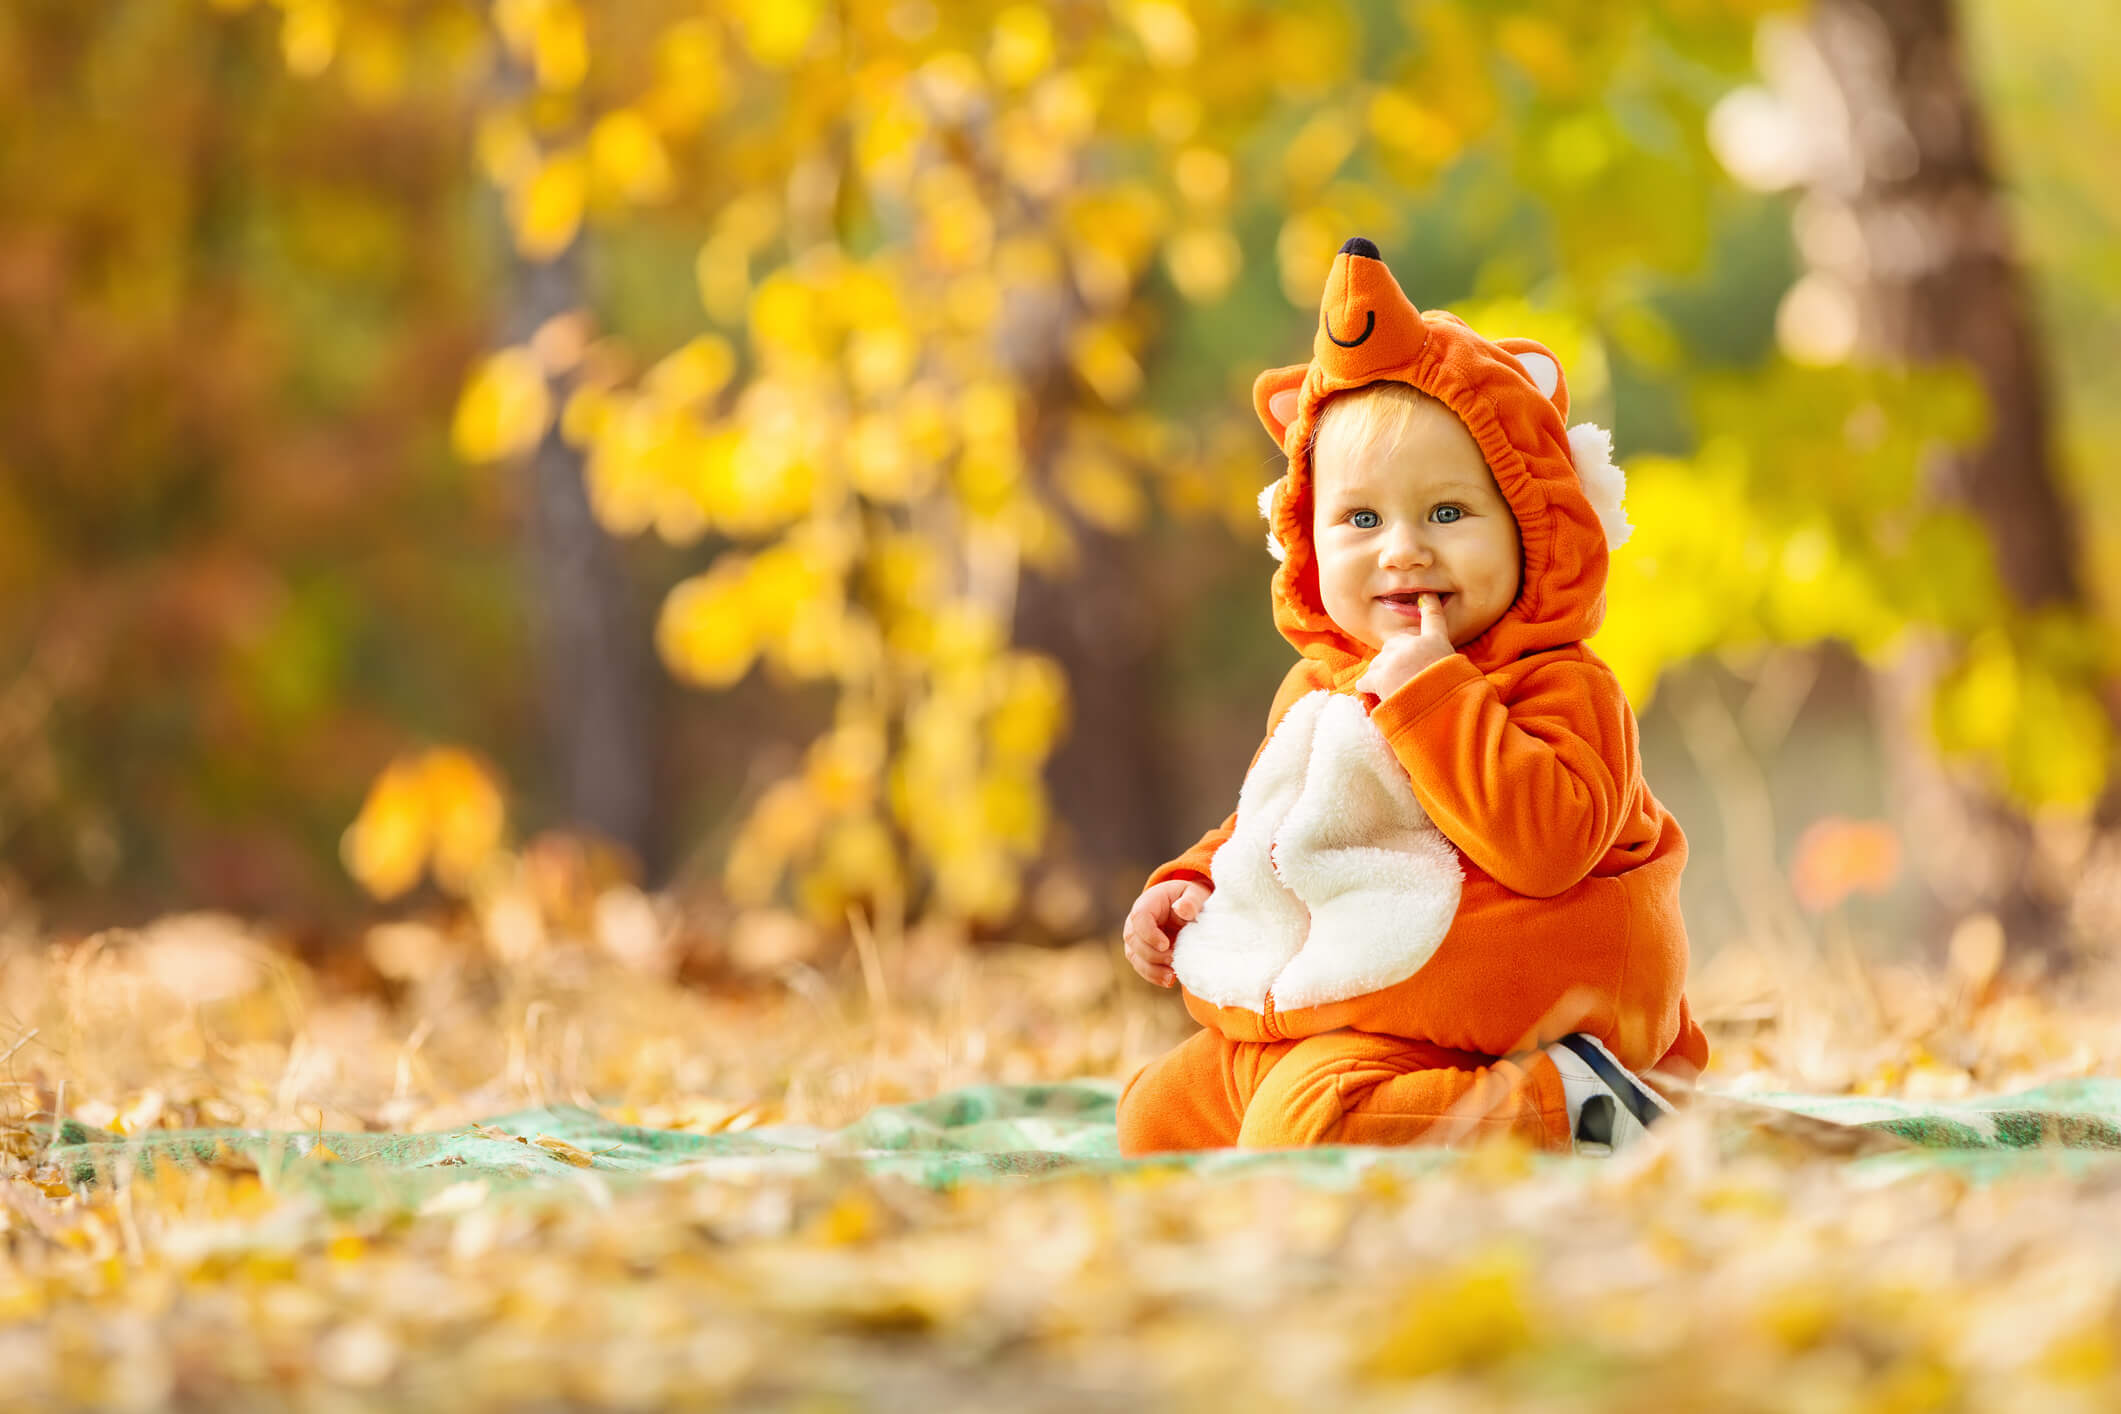 halloween is way more fun when you have a baby to dress up its true an itty bitty costumed cutie is the ultimate treat on oct 31